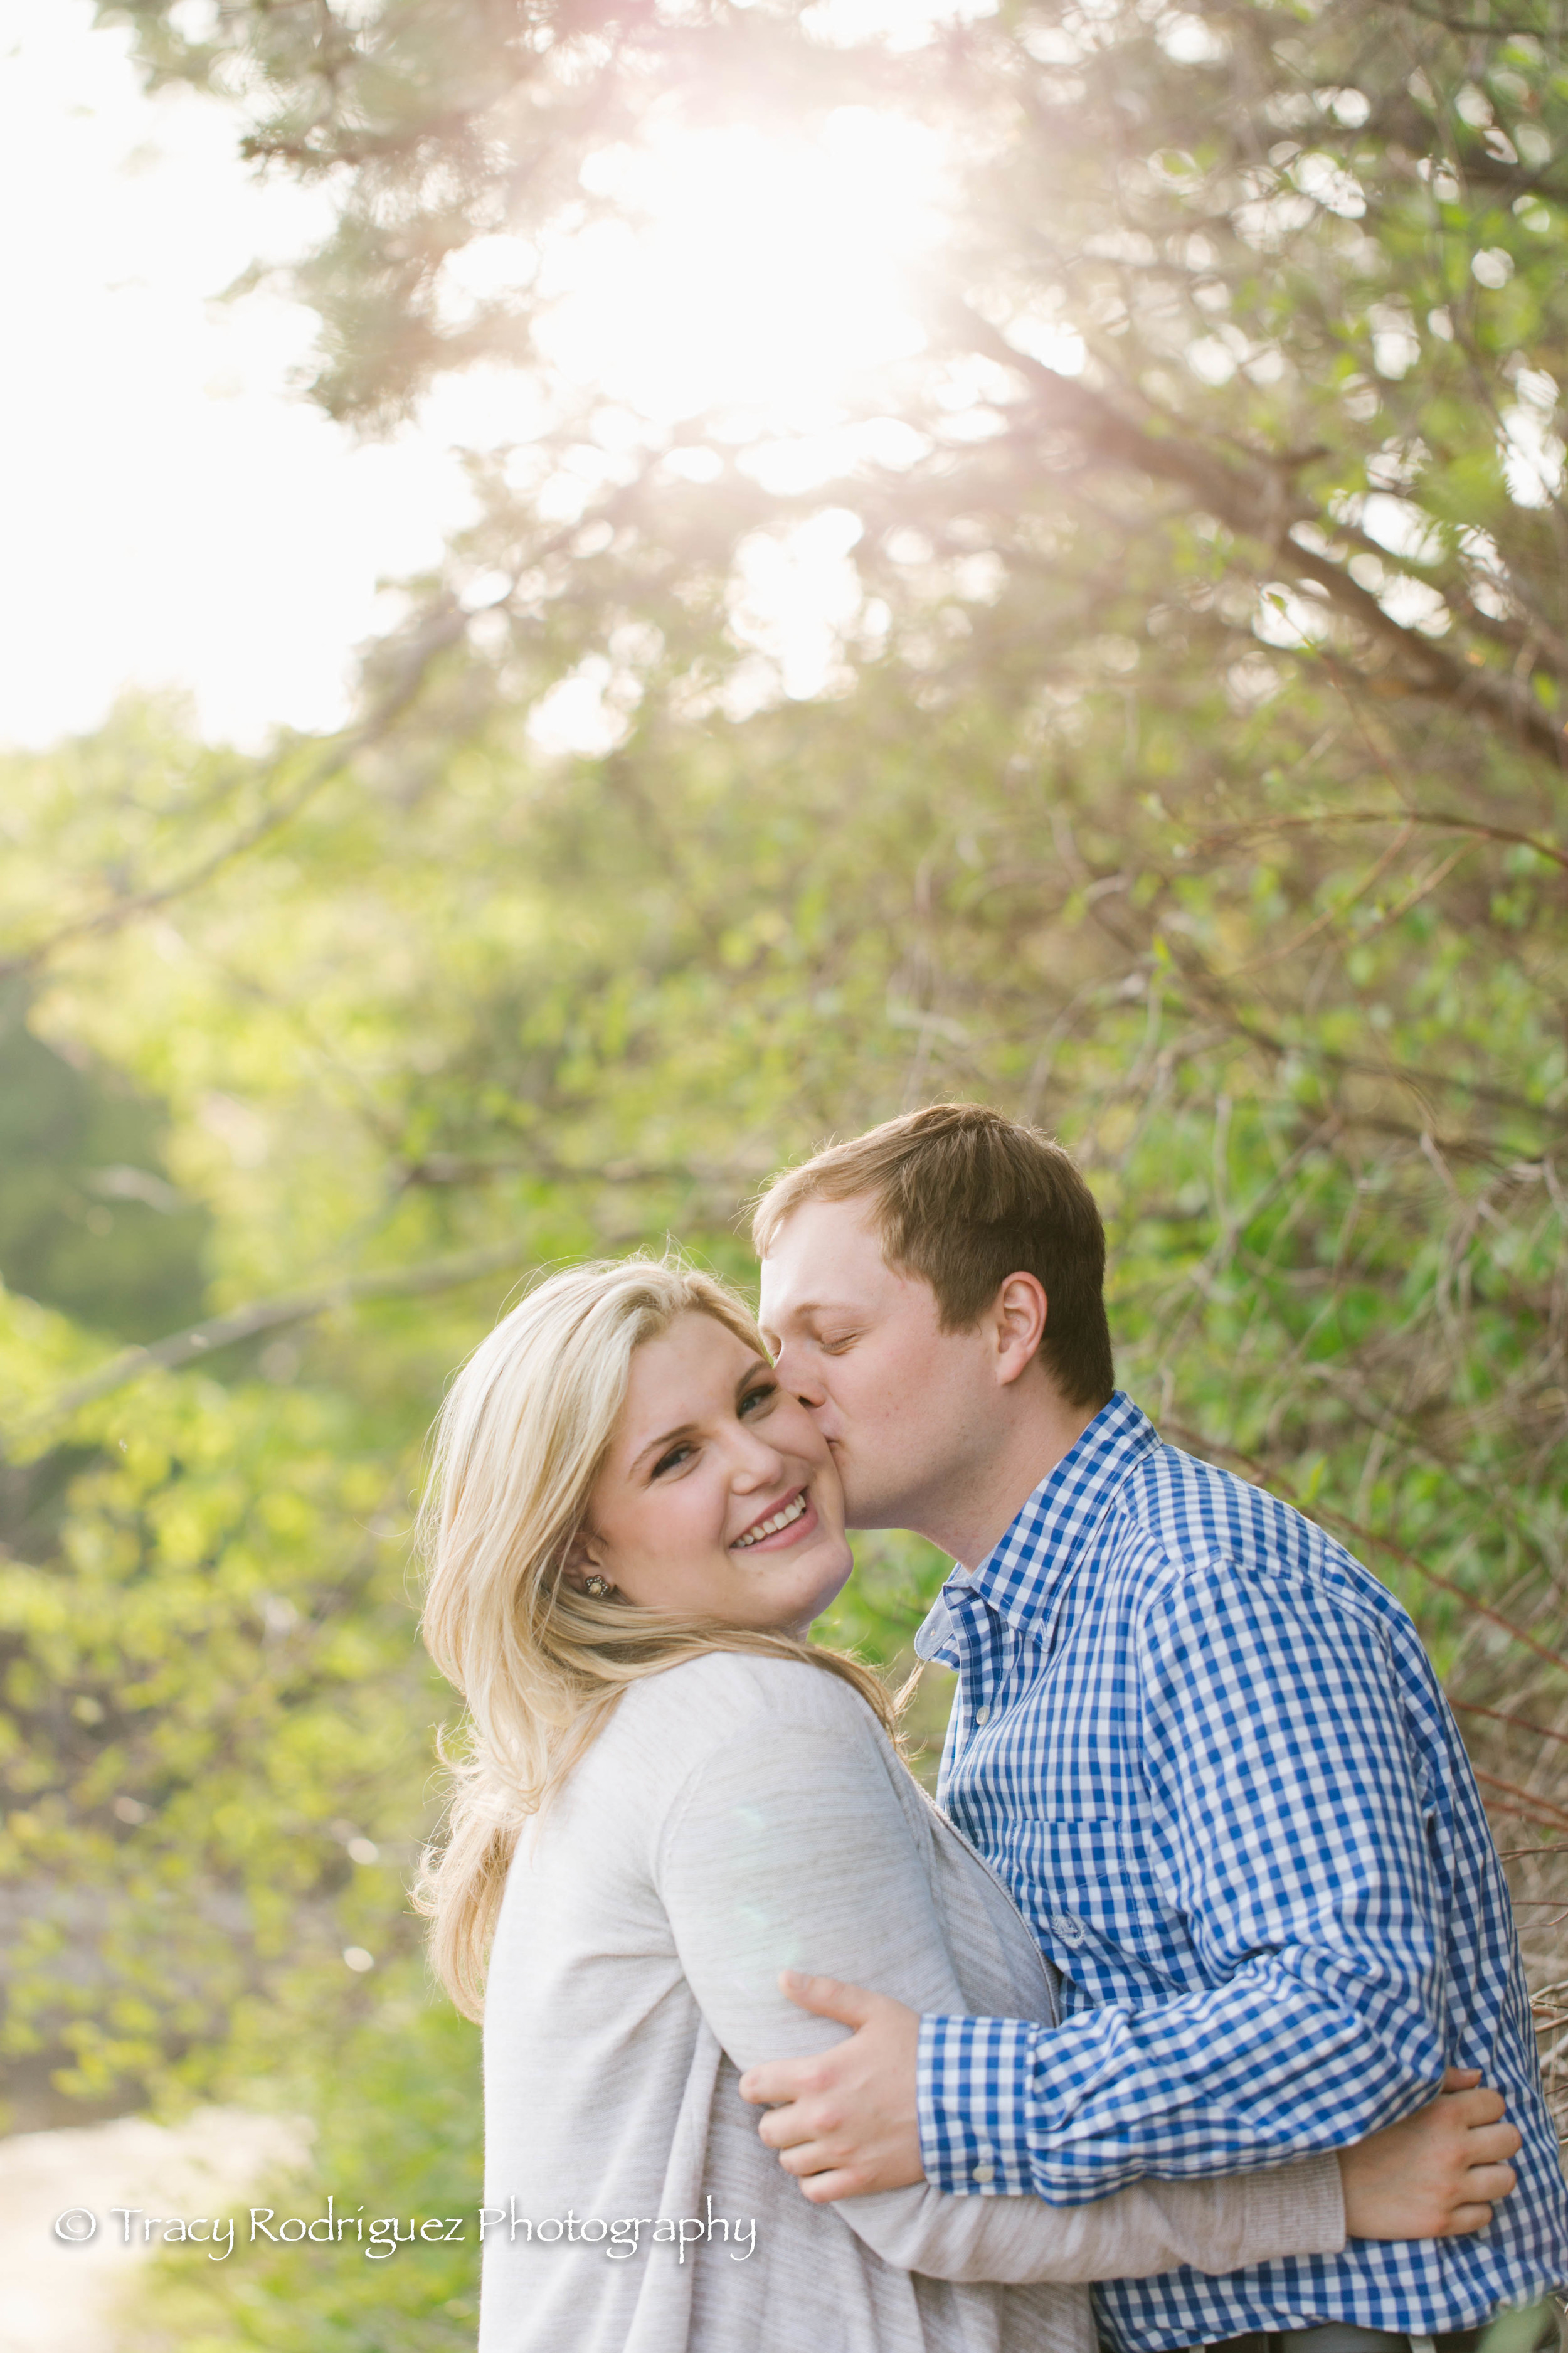 TracyRodriguezPhotography-Engagement-LowRes-37.jpg